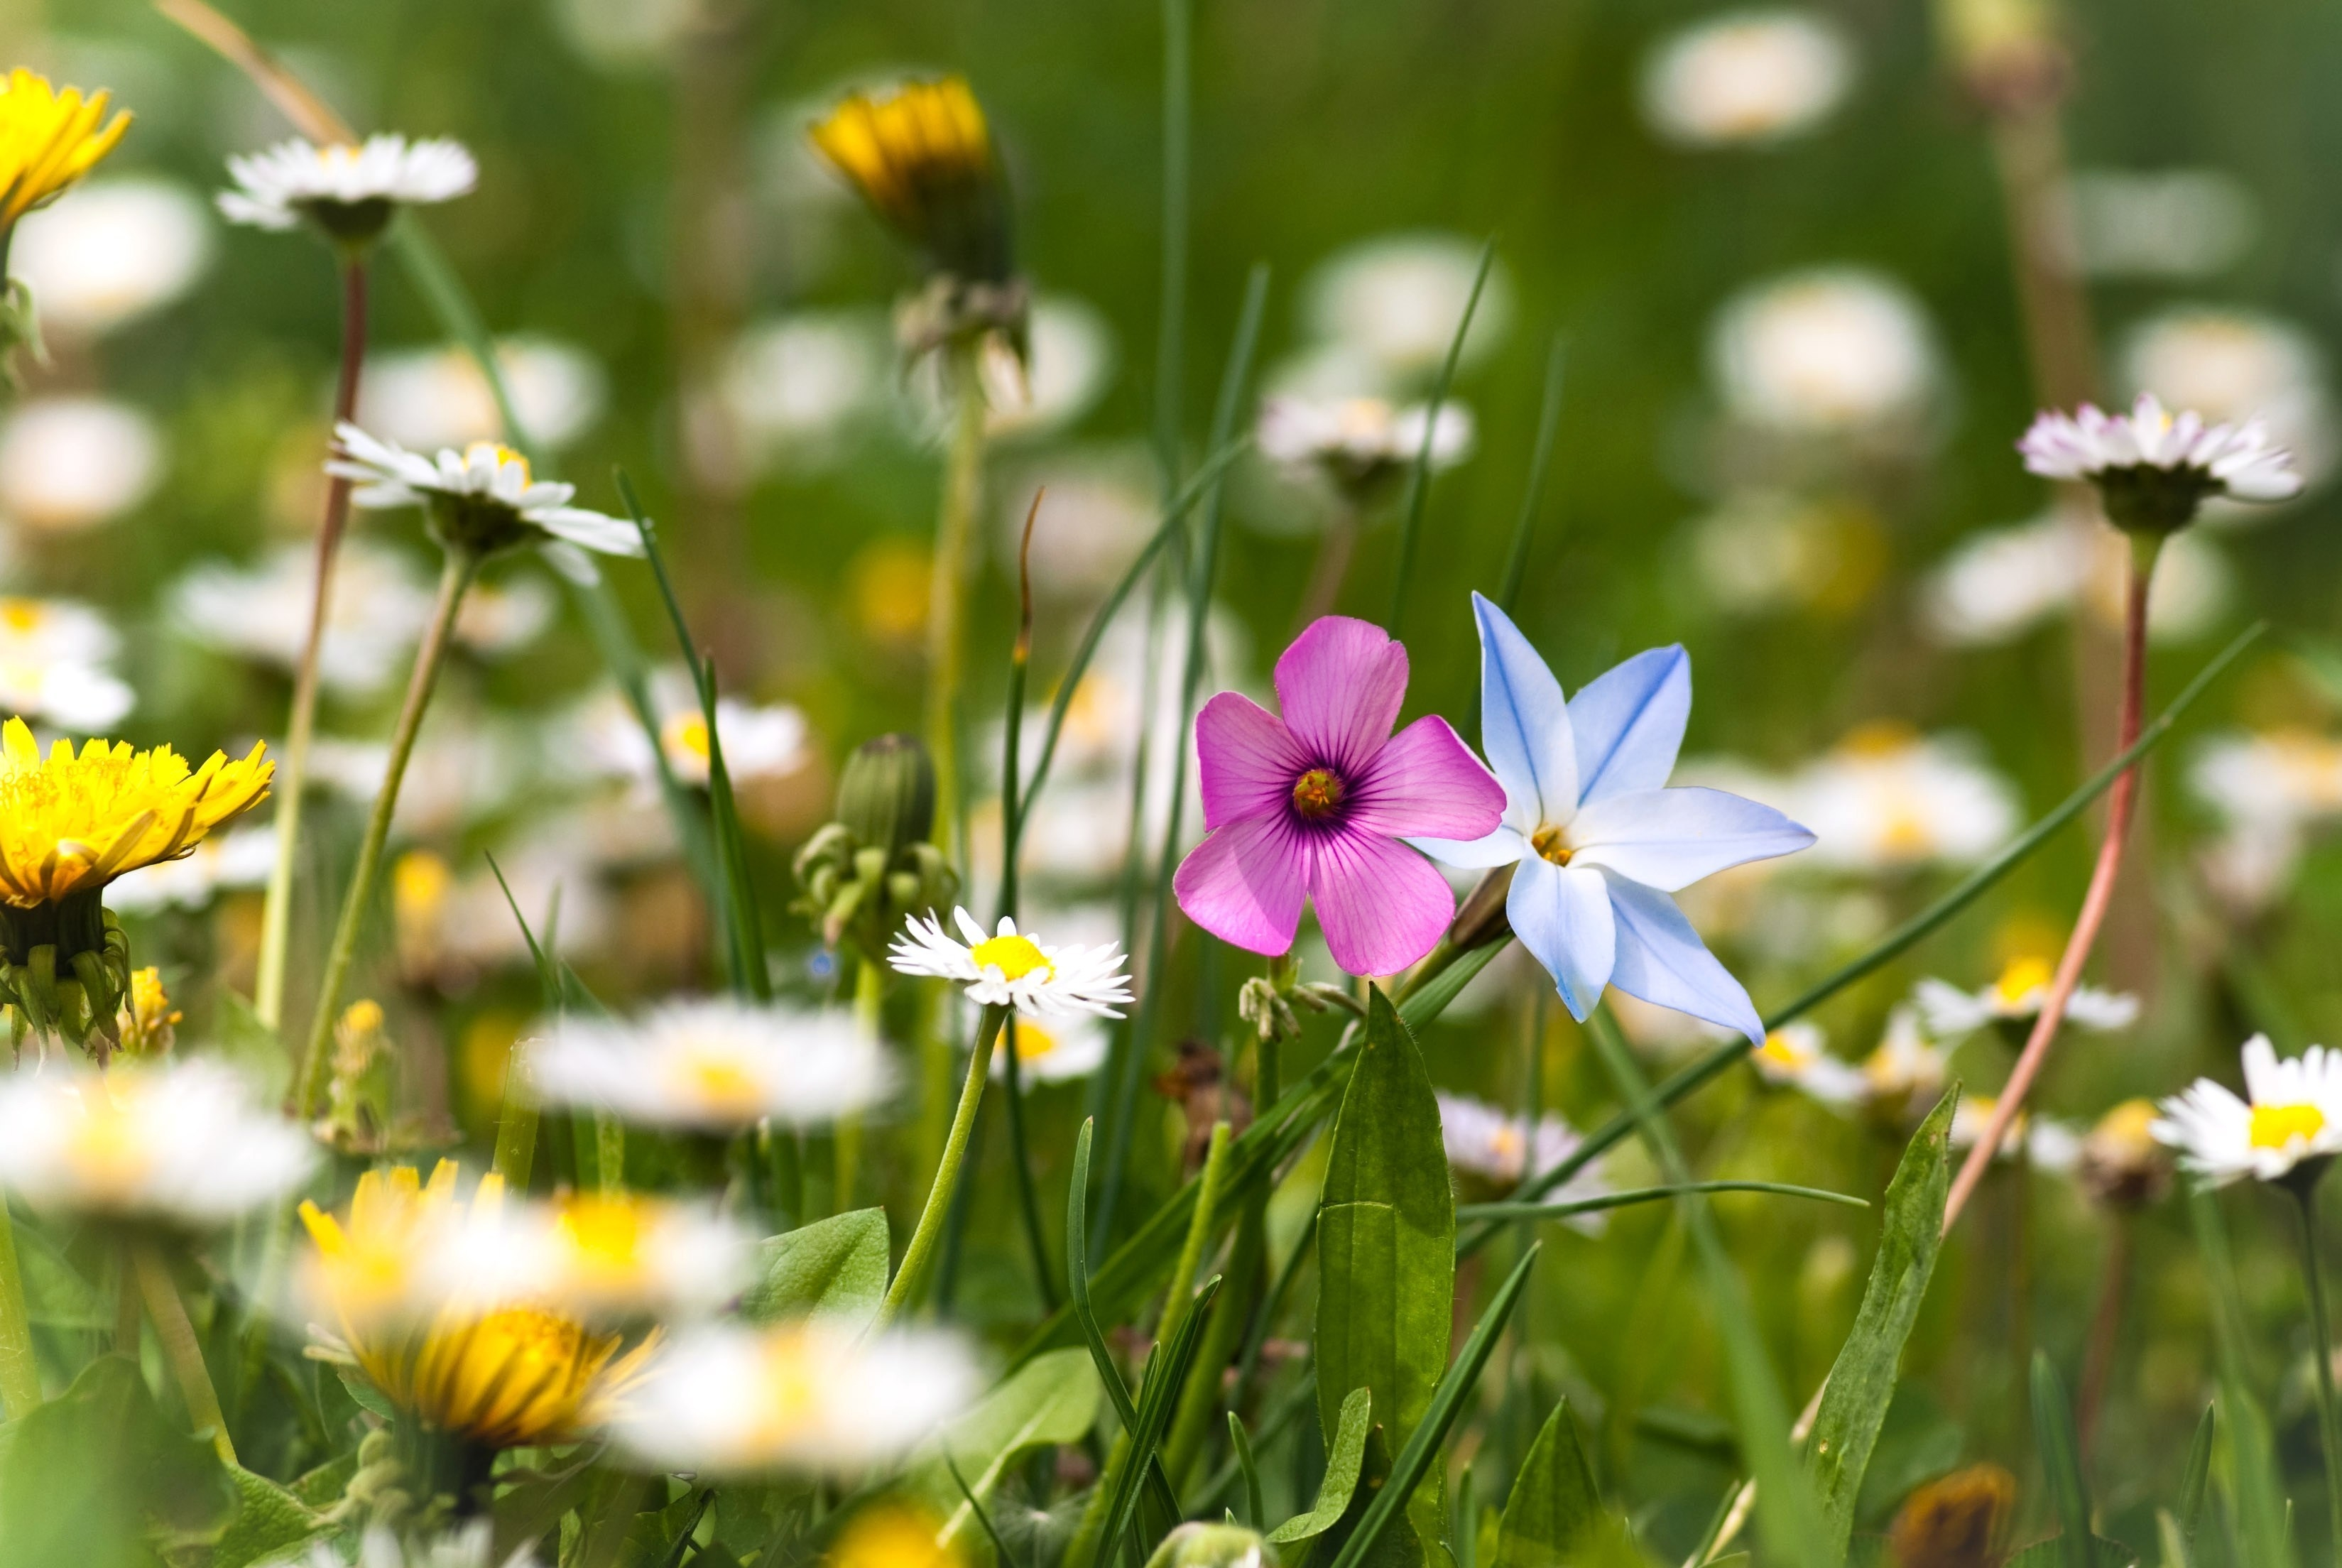 157116 download wallpaper Flowers, Polyana, Glade, Summer, Grass, Nature, Mood screensavers and pictures for free